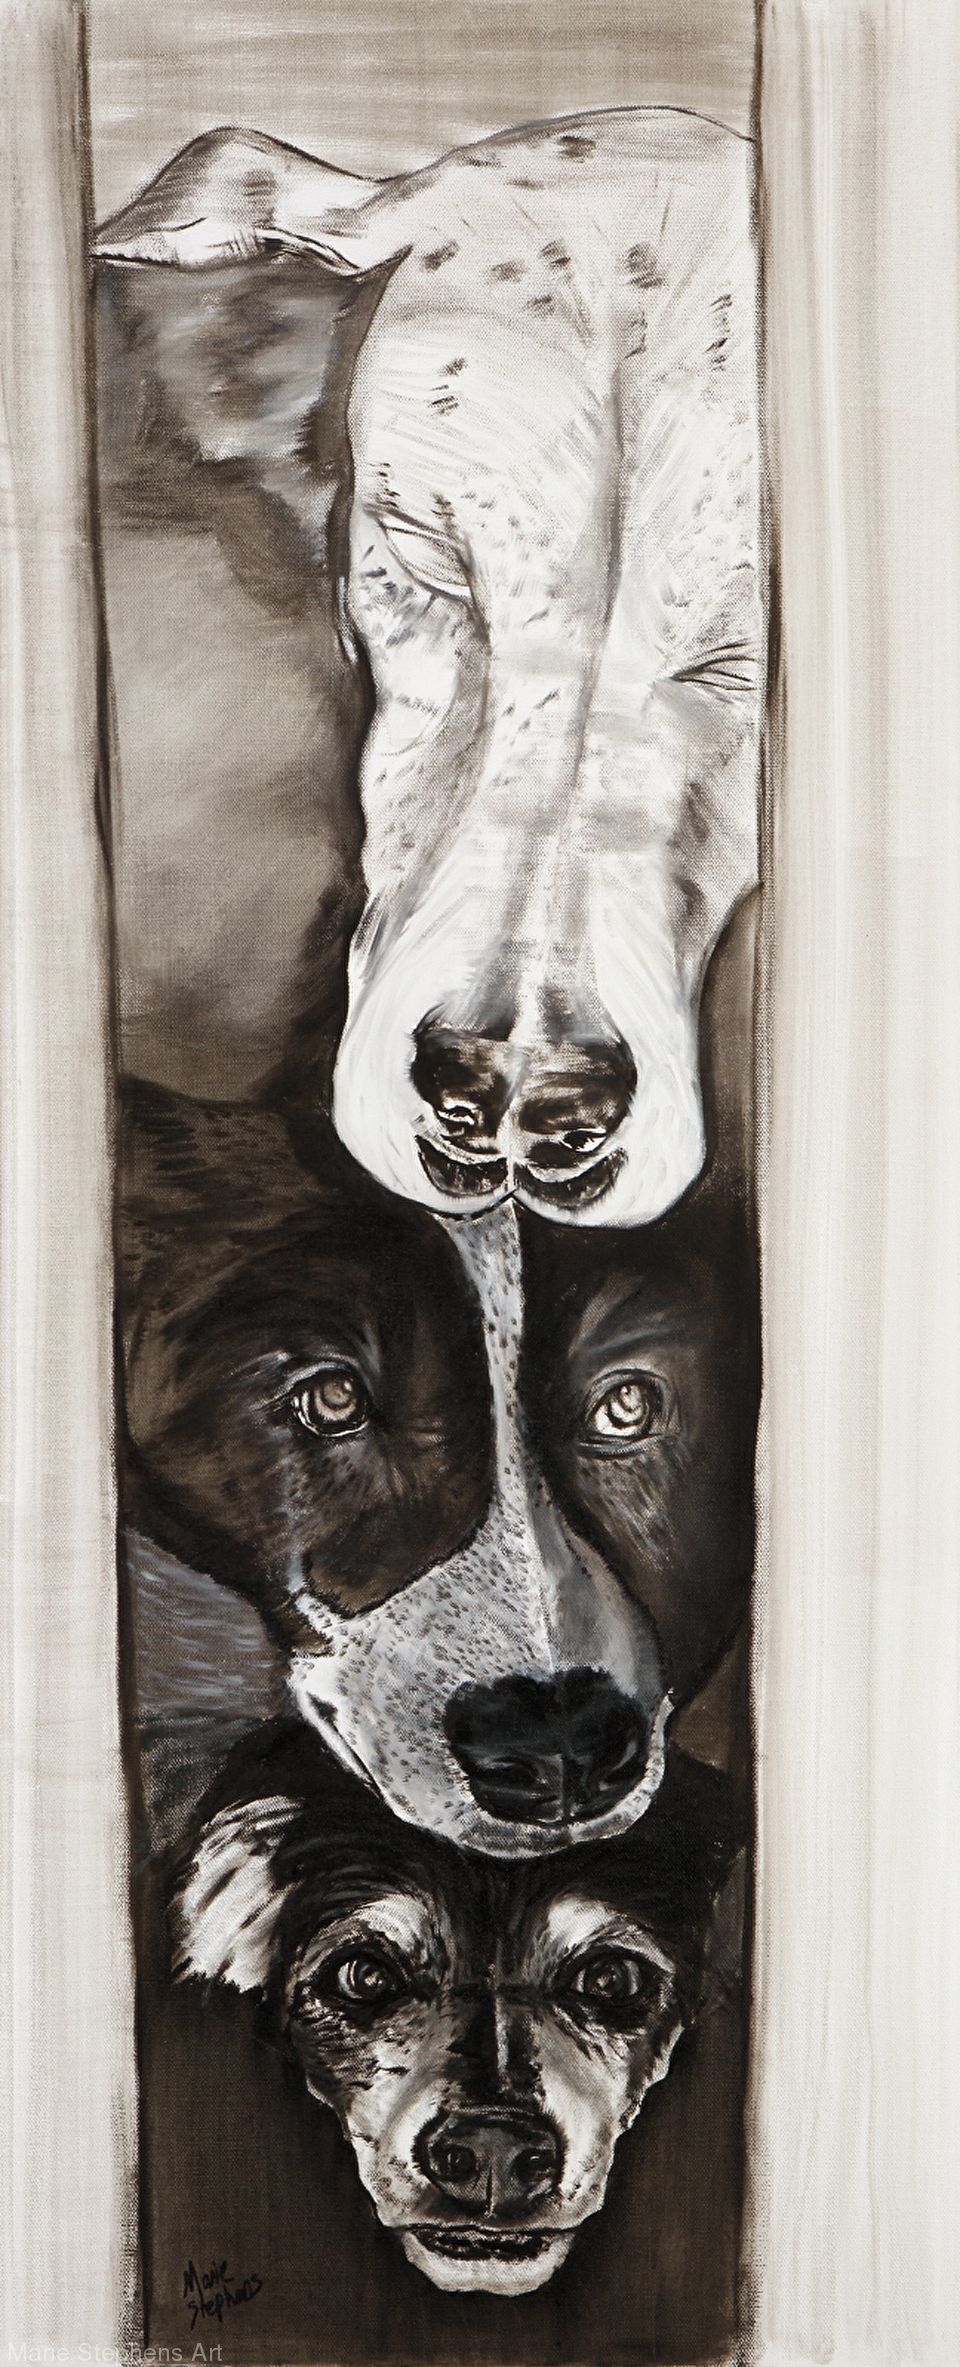 Skye, Lexey, and Duke by Marie Stephens, Oil, 40inches x